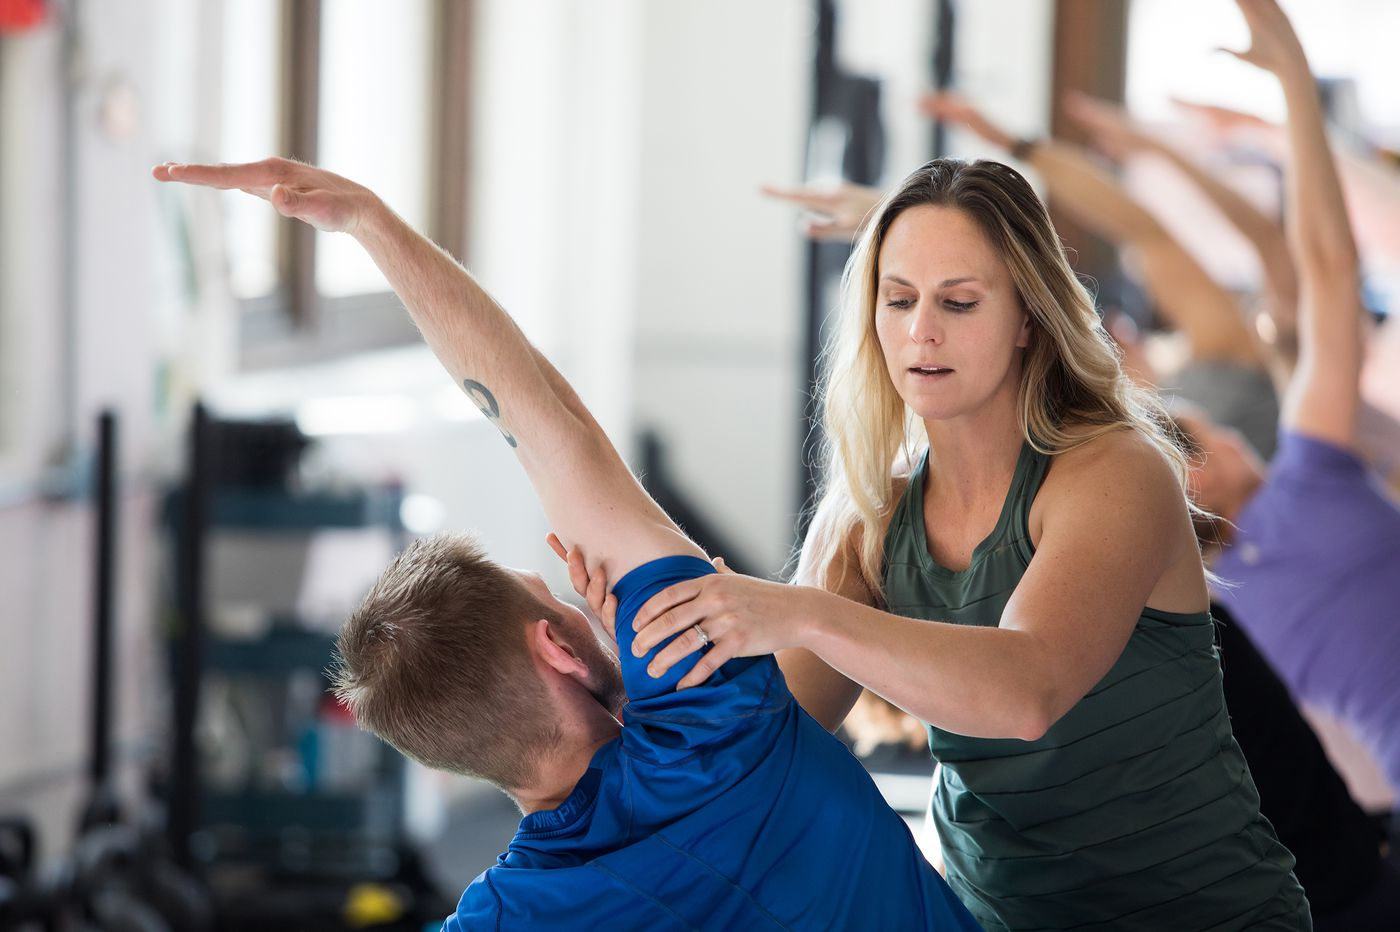 With mimosas, pastries, and community-building, this Philly yogi's classes go way beyond stretching